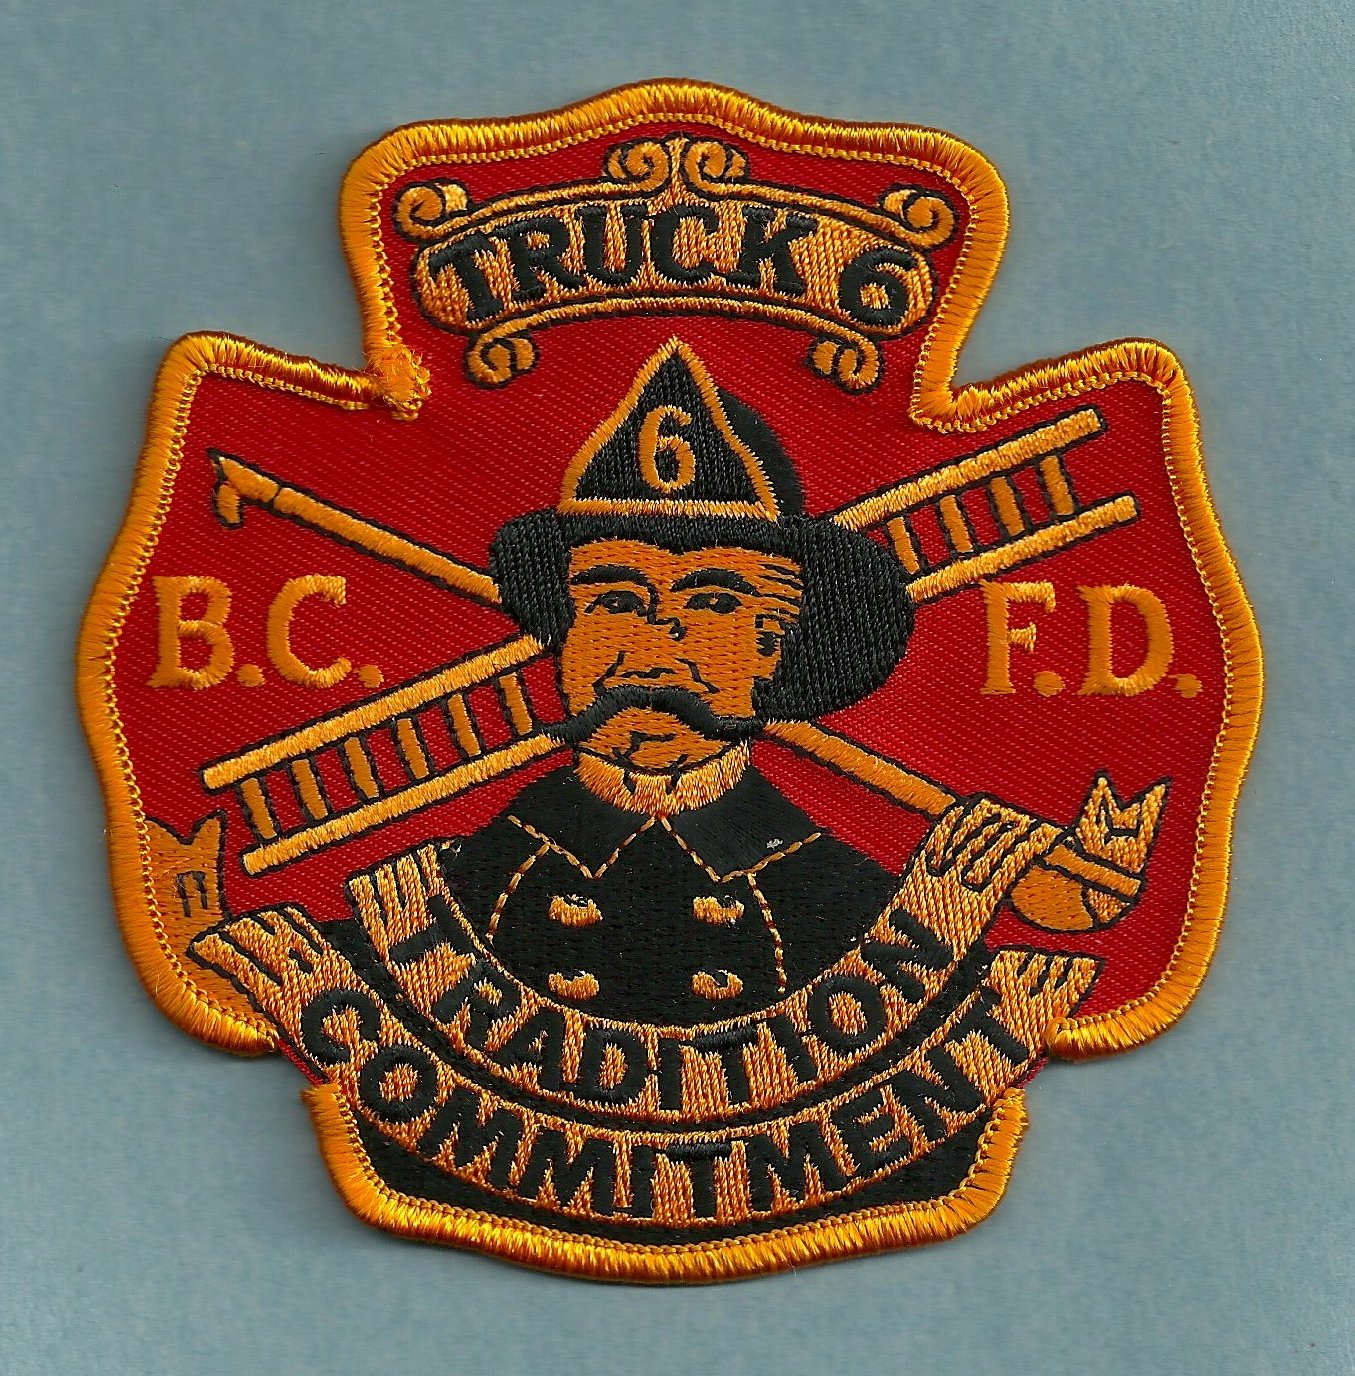 Baltimore City Fire Department Truck Company 6 Fire Patch